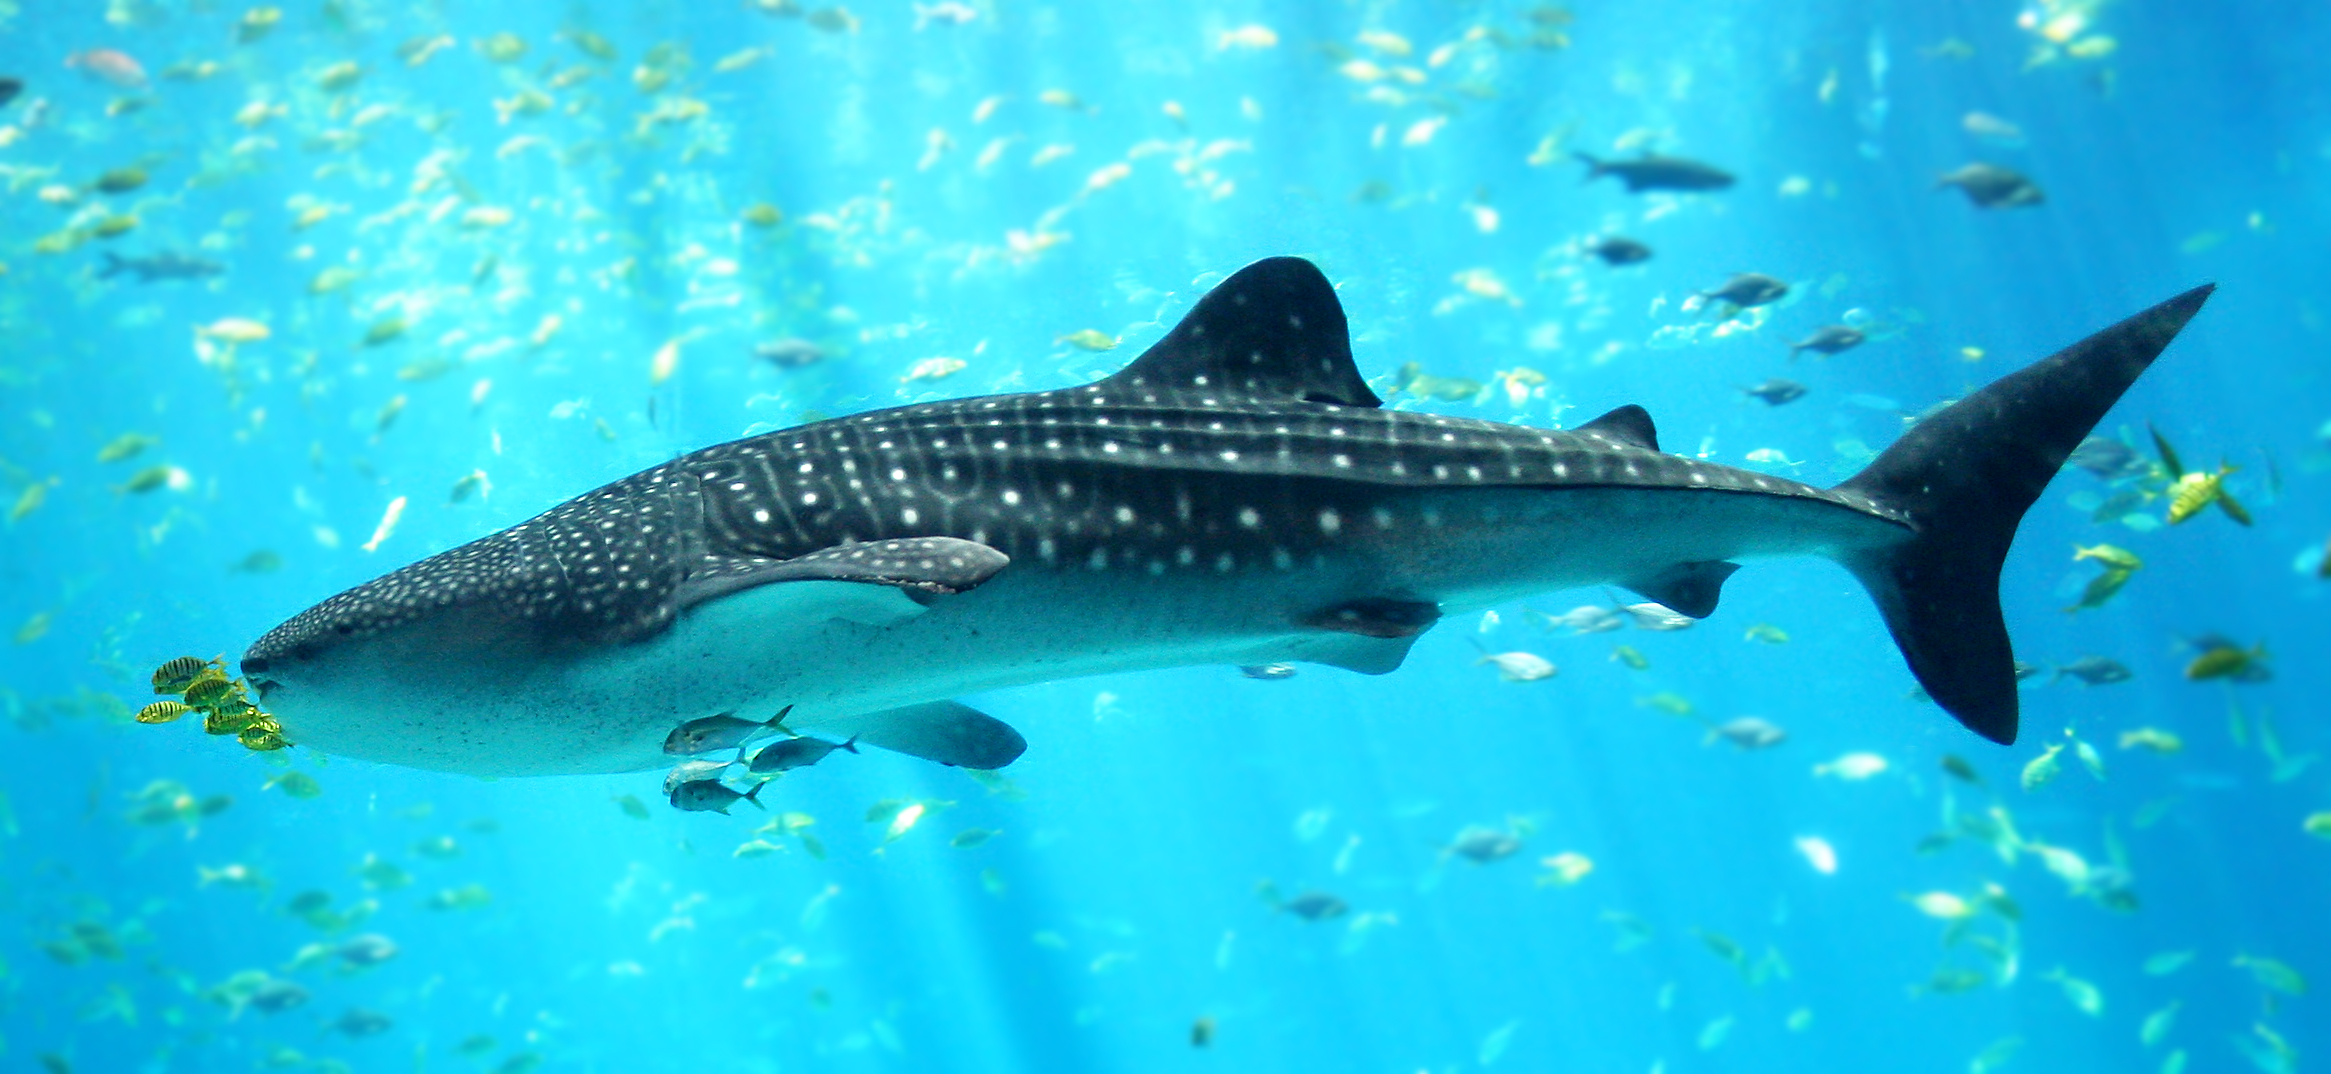 The image displays a whale shark swimming in the Georgia Aquarium.